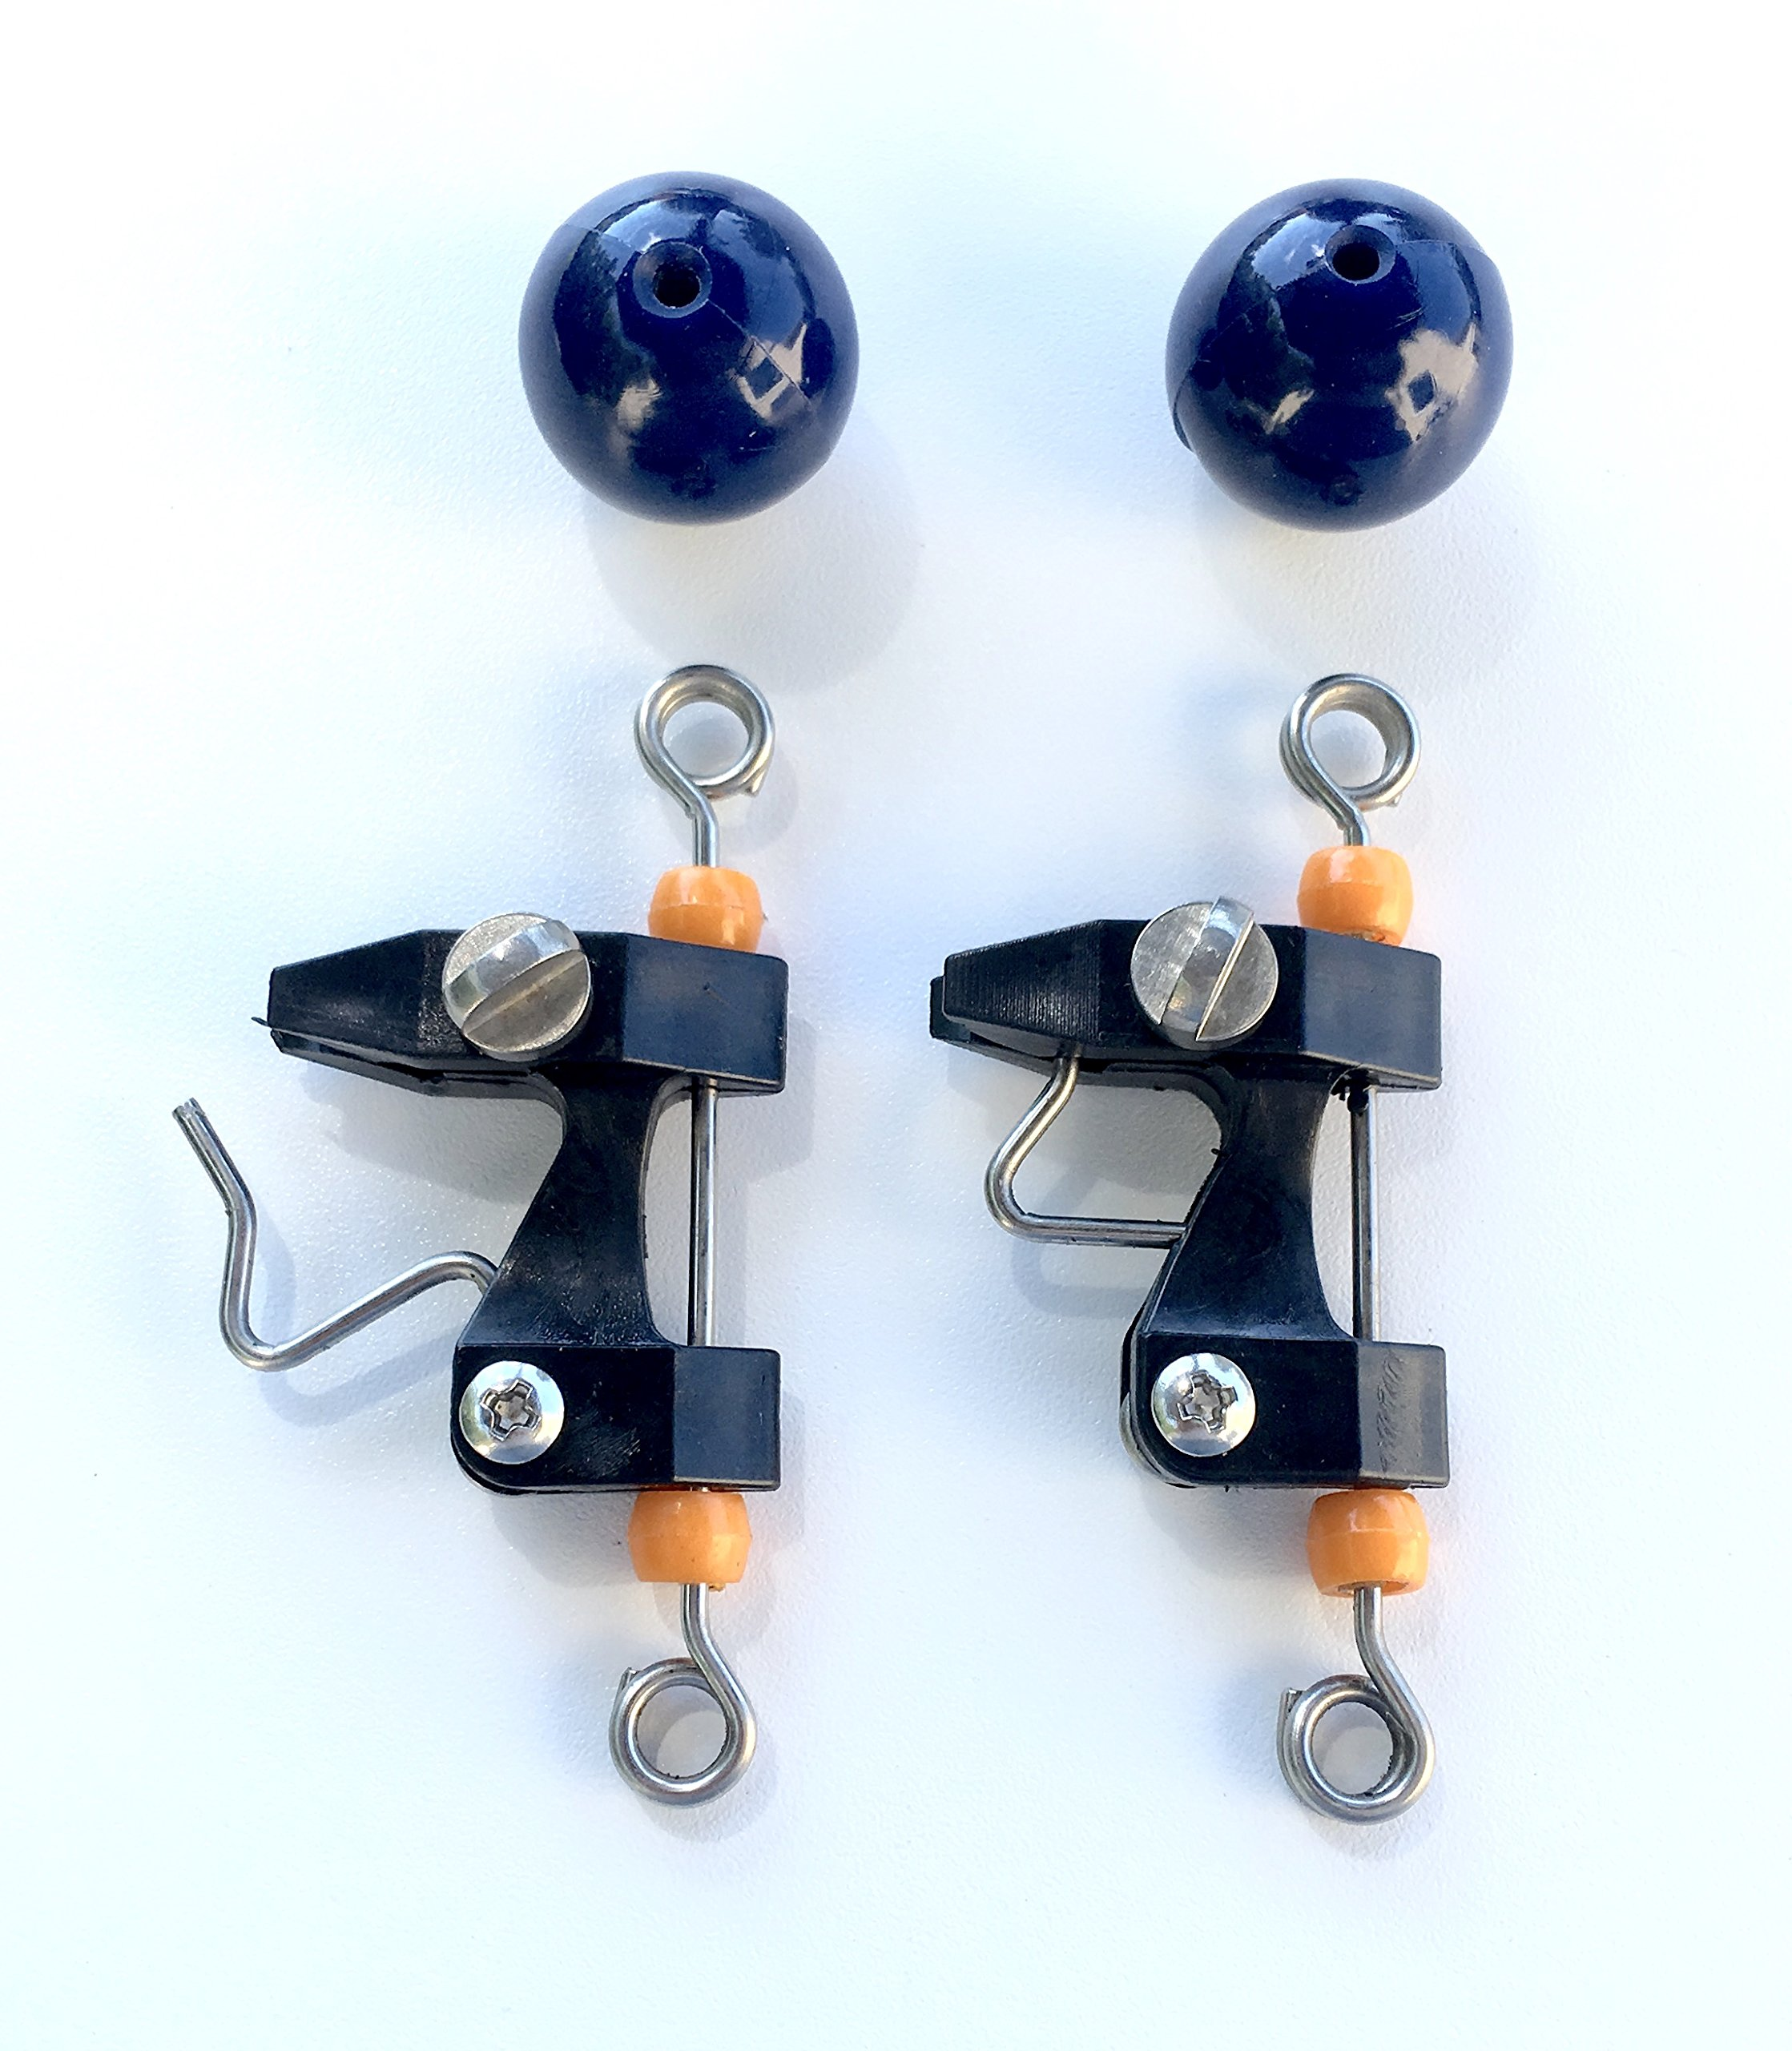 Outrigger Clips and Blue Stop Balls